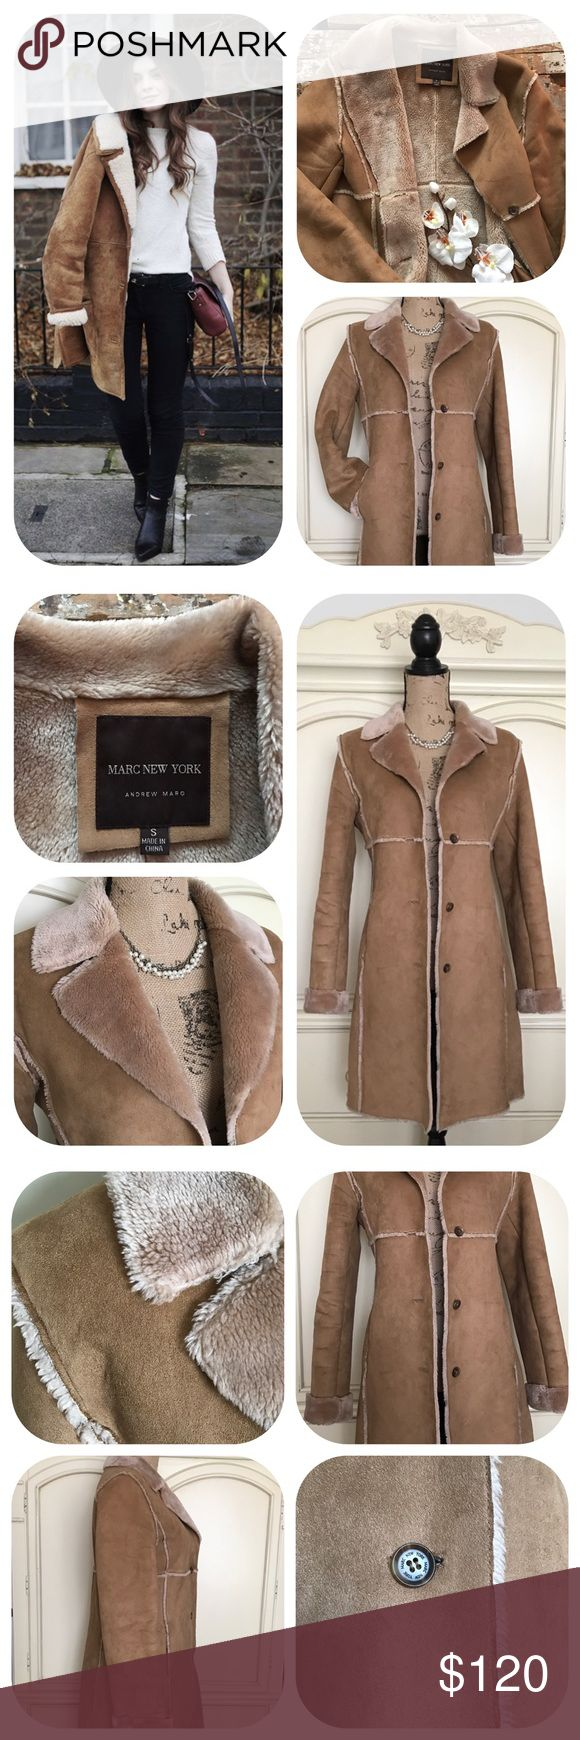 Andrew Marc New York Faux Shearling Coat A beautiful, super soft & warm faux shearling long coat by Andrew Marc (Marc New York). On trend this season, long sleeves, two side pockets, clean & in good condition. Gently used a couple of times. Perfect for this cold season! Feels like soft suede & fur but it's 100% polyester (Model pic with similar coat for styling purposes only) Size Small No holds/trades No transactions outside Poshmark No lowball offers, open to reasonable ones Please use…